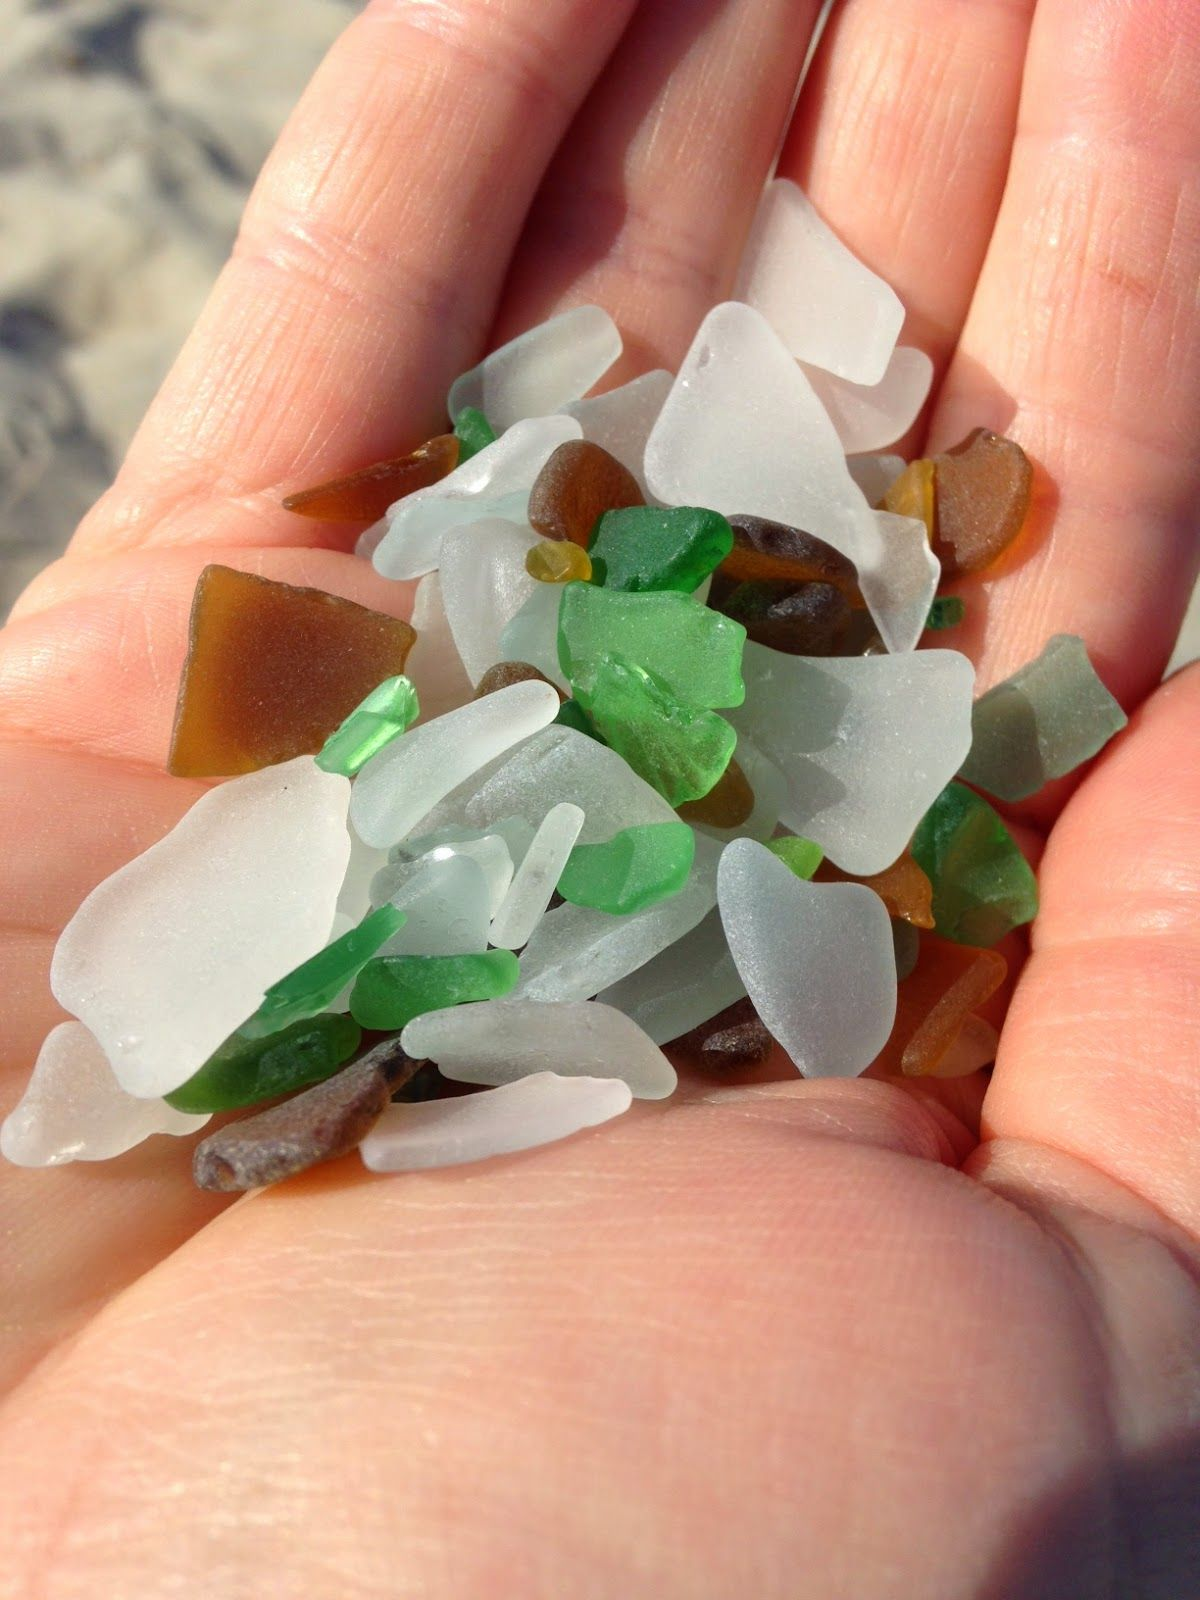 Seaglass from the Baltic Sea